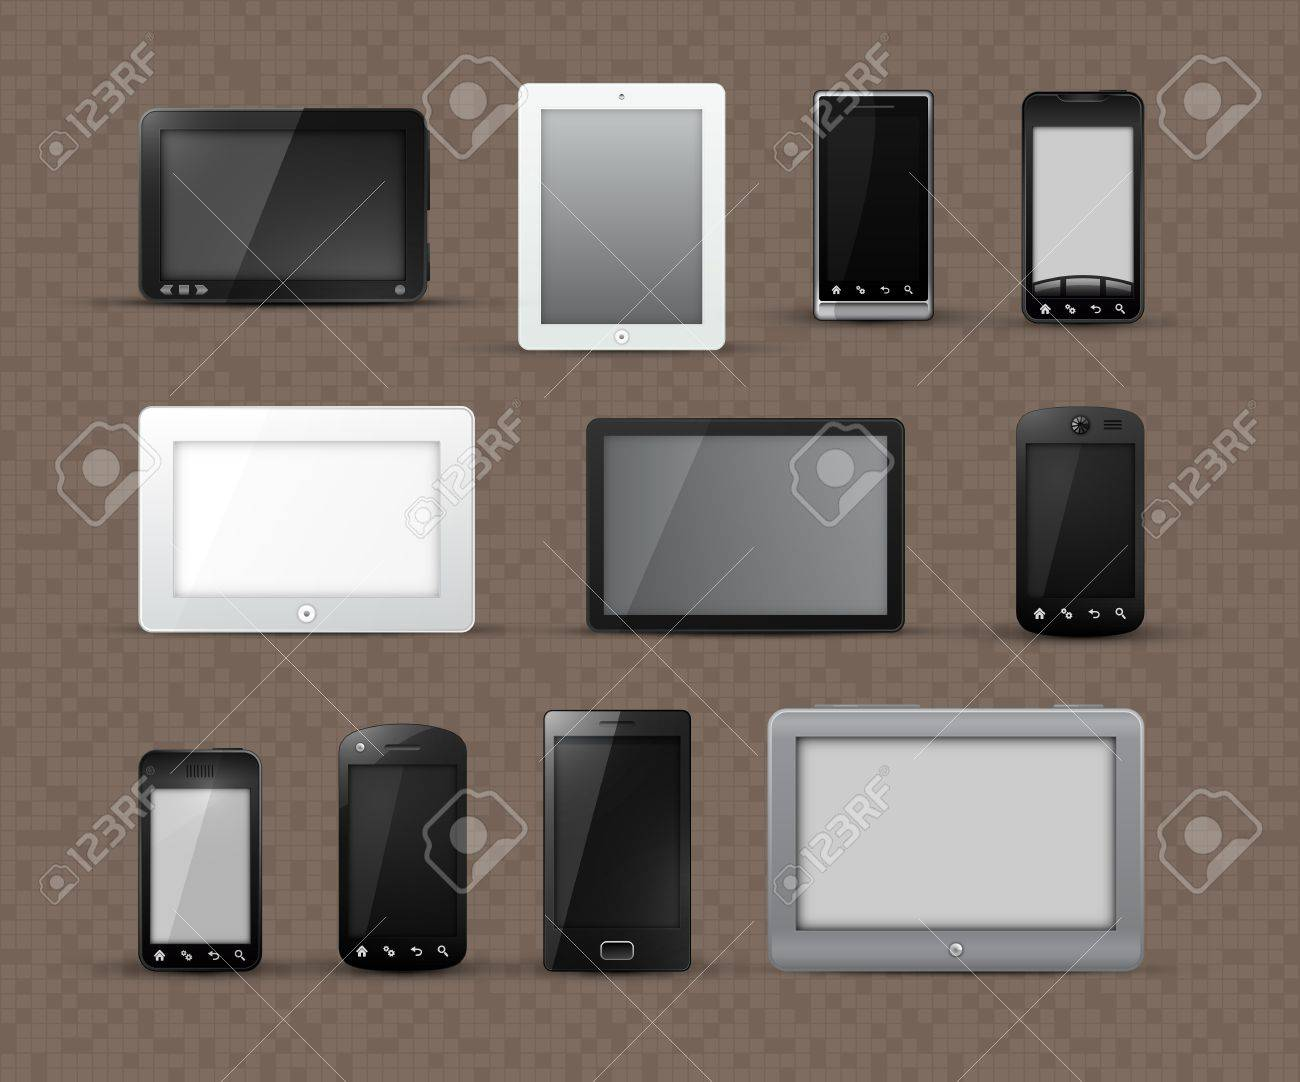 Different Generic Models of Tablet Devices and Smart Phones | EPS10 Vector Graphic | Layers Organized and Named Stock Vector - 12872795